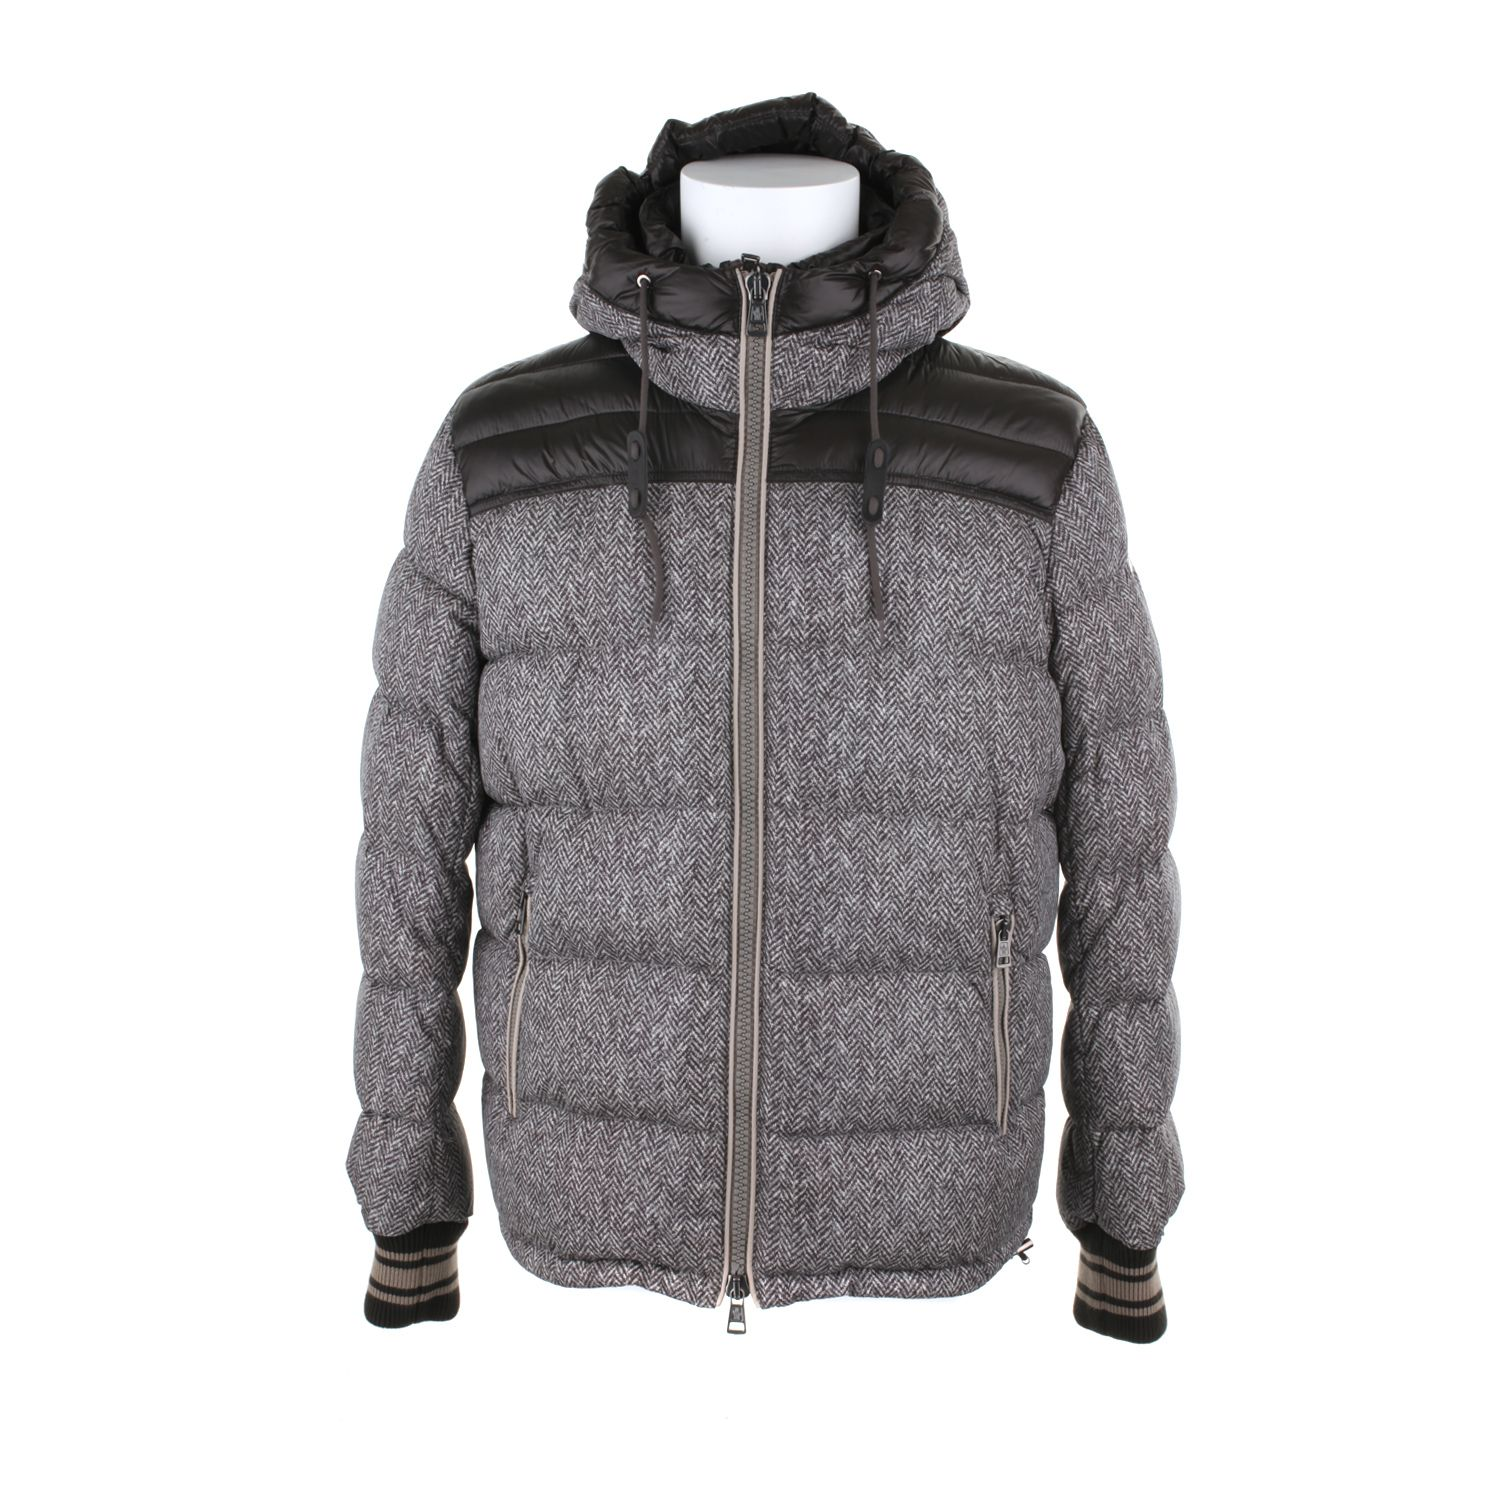 Moncler Down Jacket in Polyamide Fibers with A Tweed